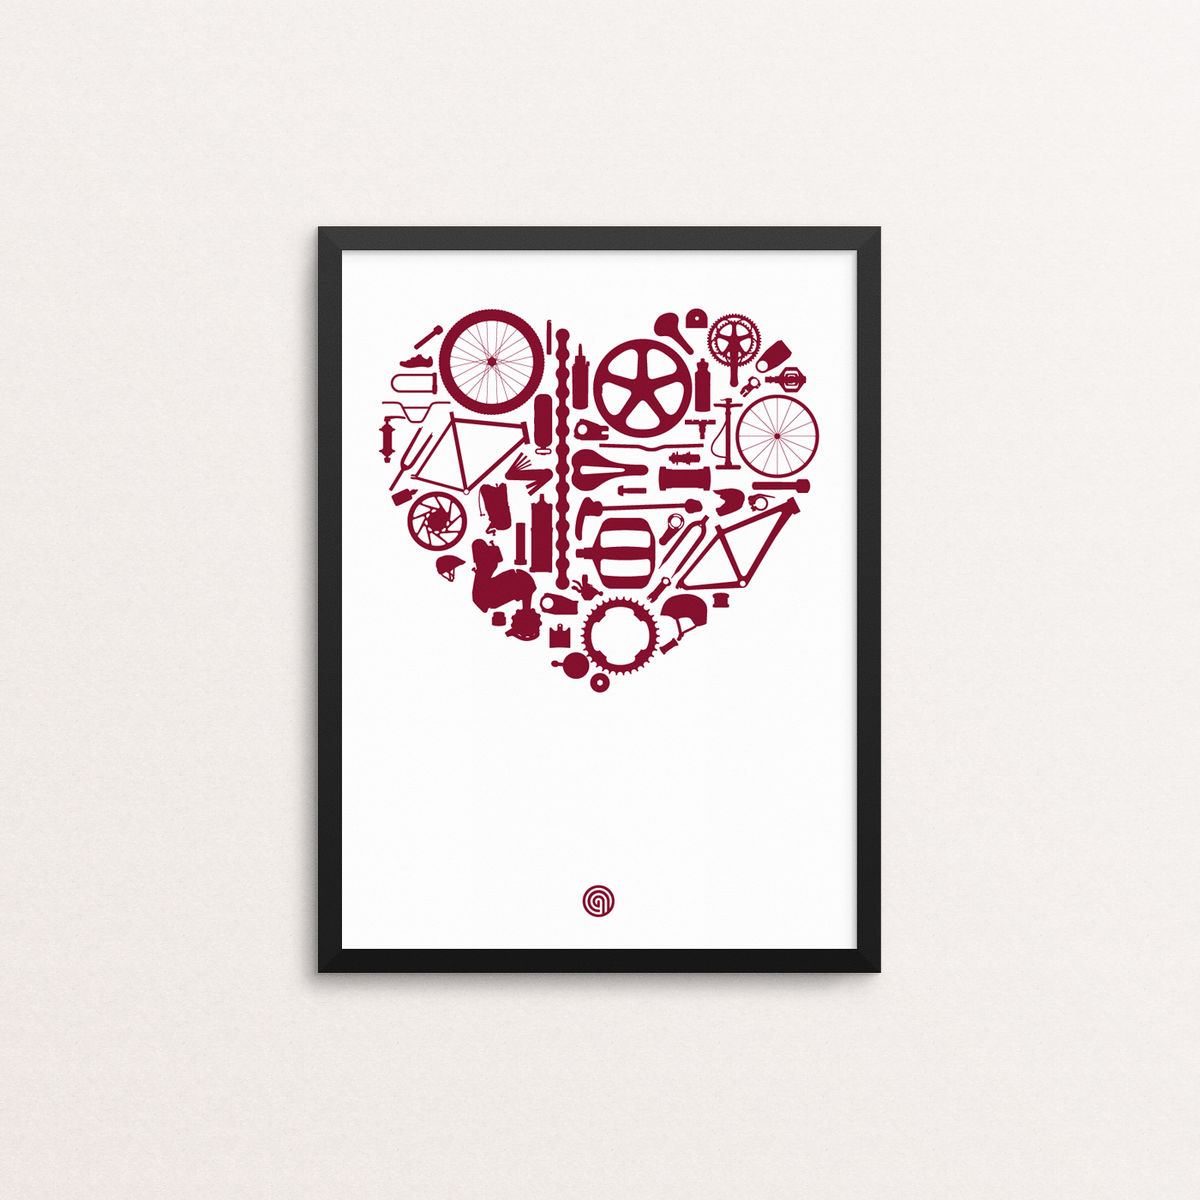 Bike Love - Giclee Print Open Edition - product image